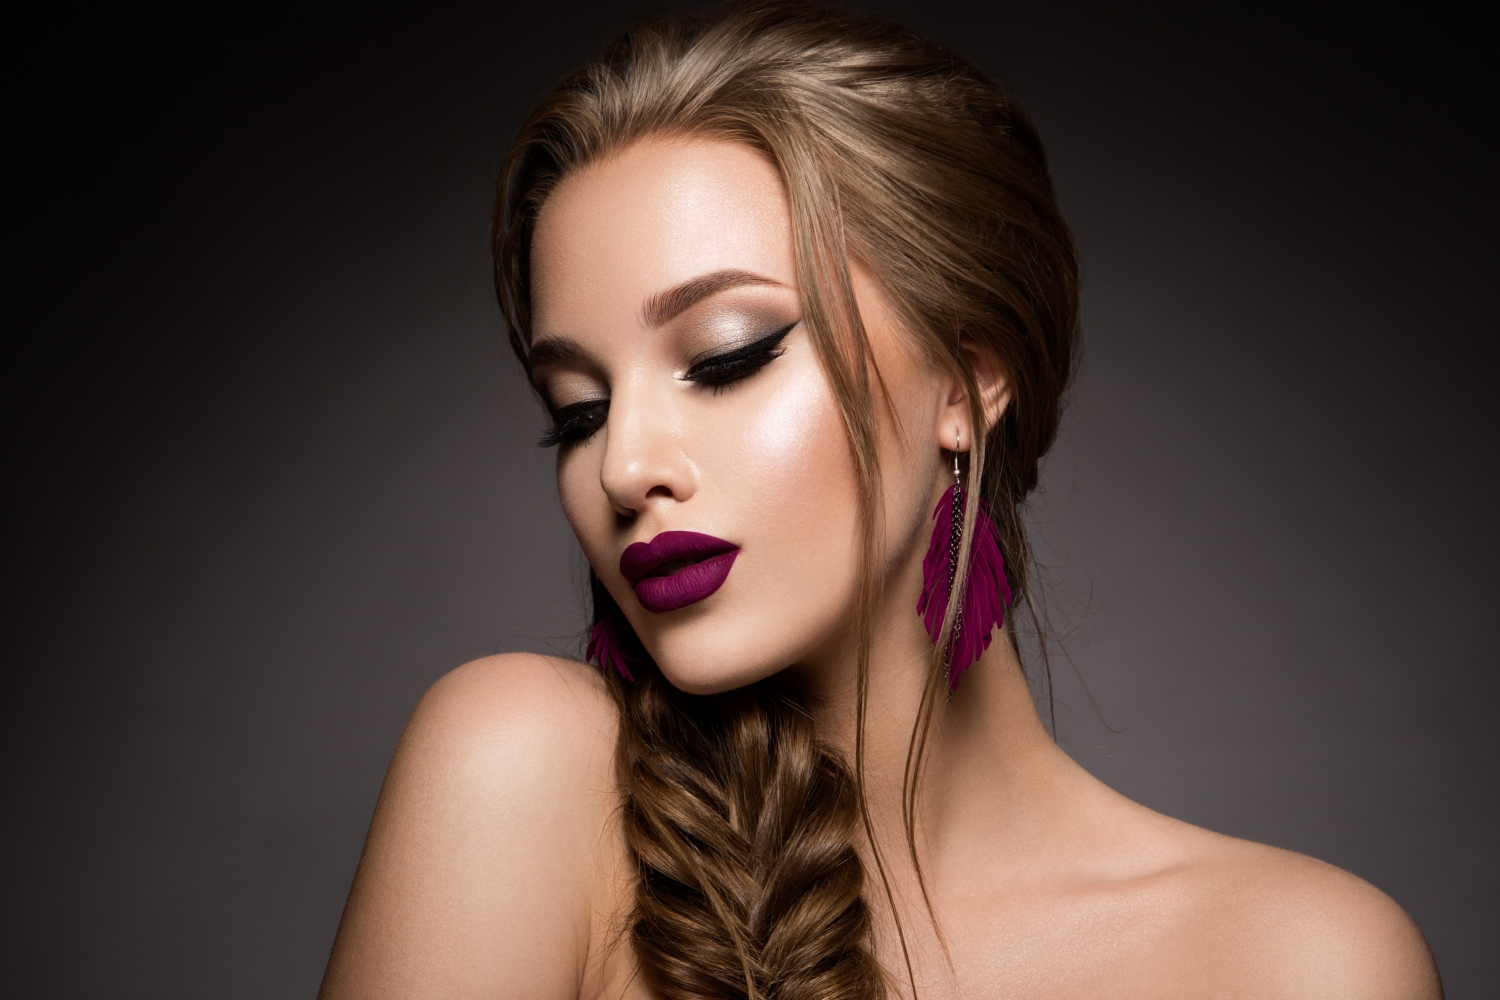 Woman with beautiful hair do, makeup and lash extensions